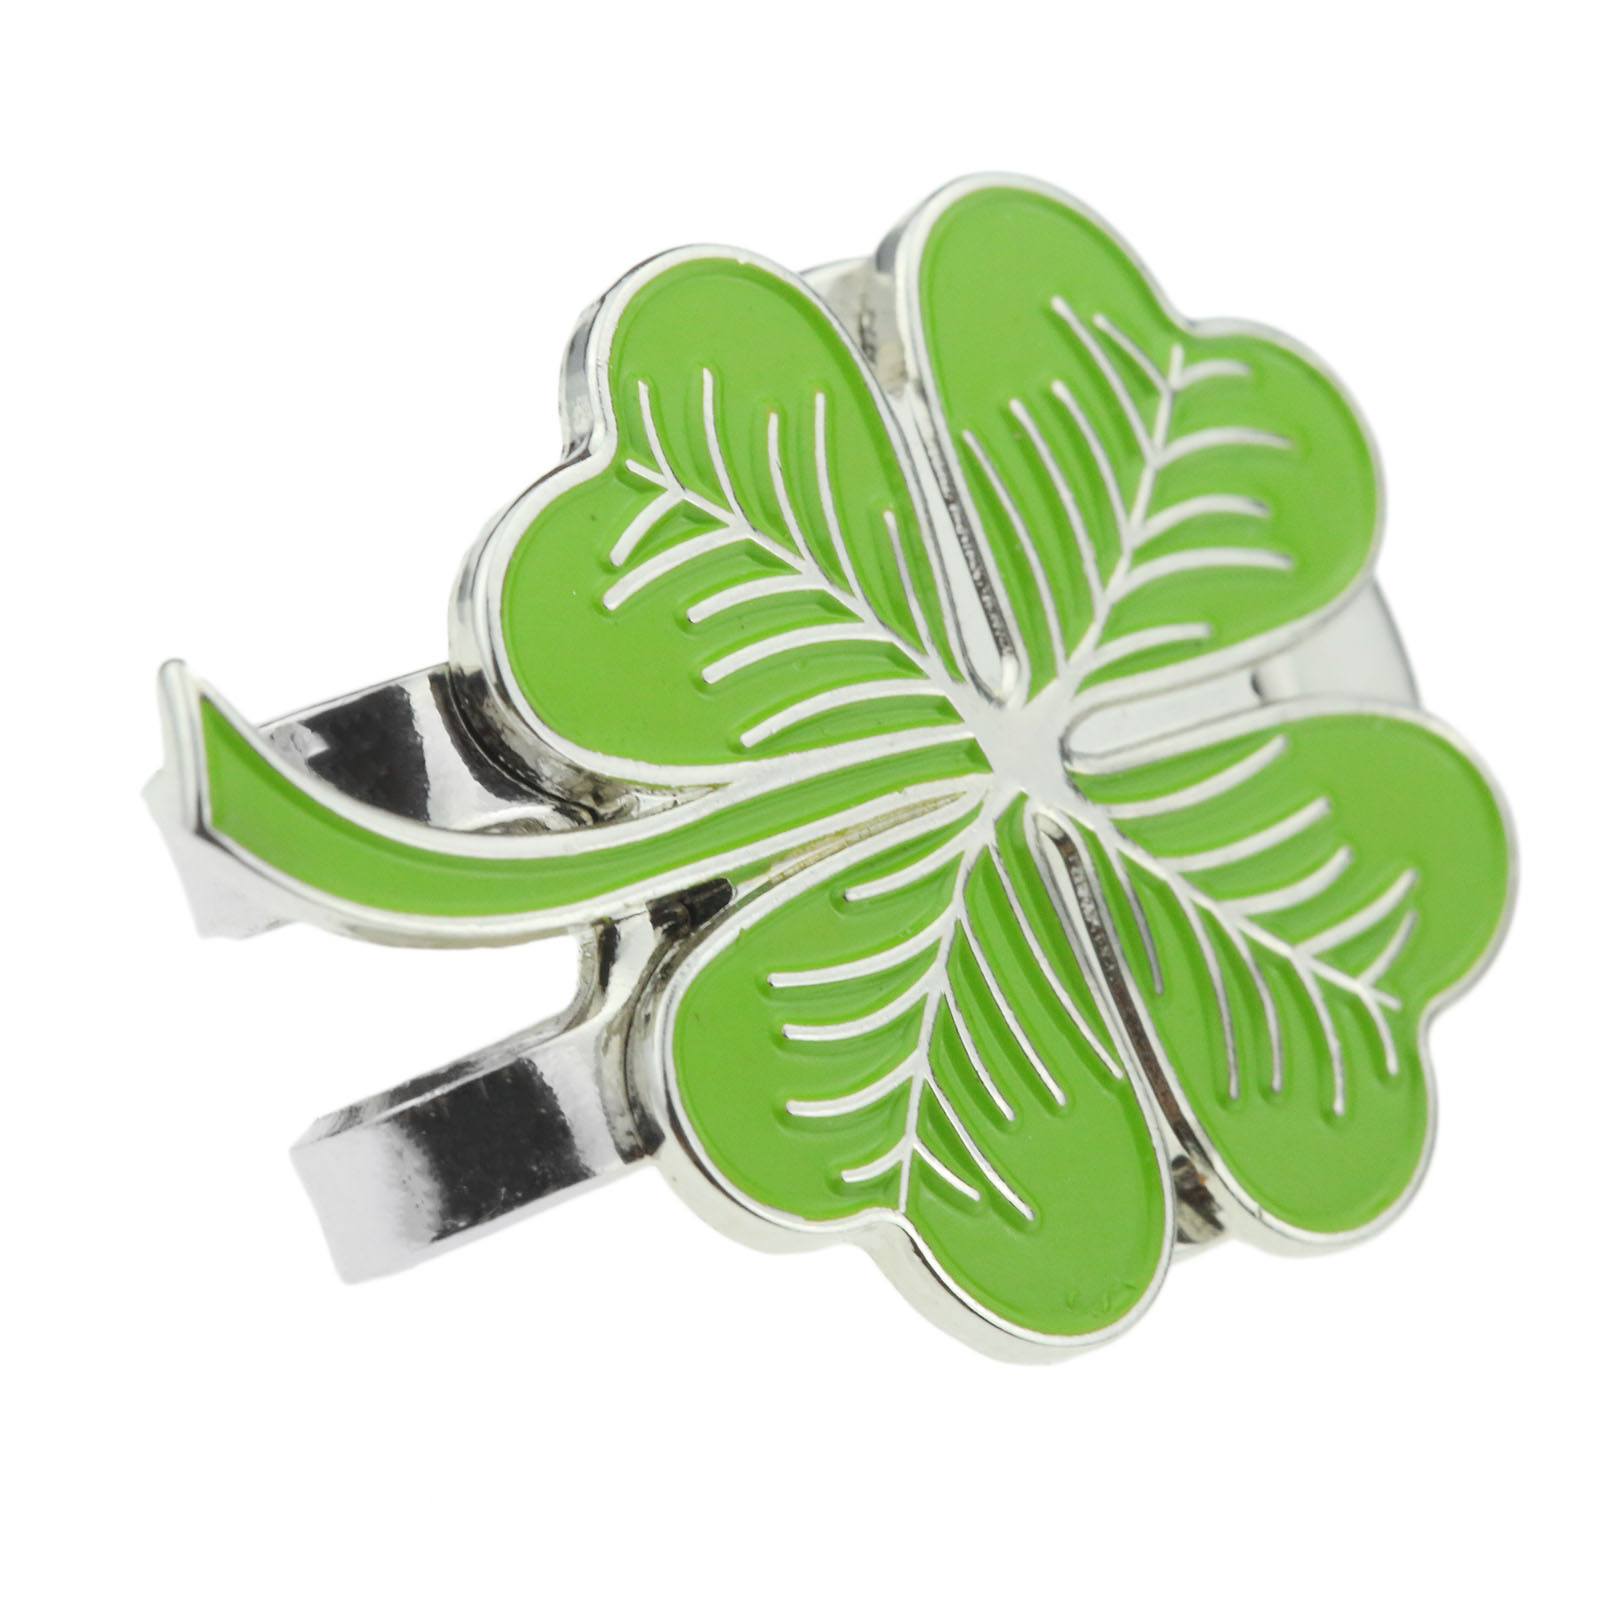 Alloy Golf Ball Mark with Hat Clips Four Leaf Clover Design Hat Clip  Magnetic Golf Ball Mark Golf Accessories Fans Supplies-in Golf Training  Aids from ... 6f9fdd025ec5